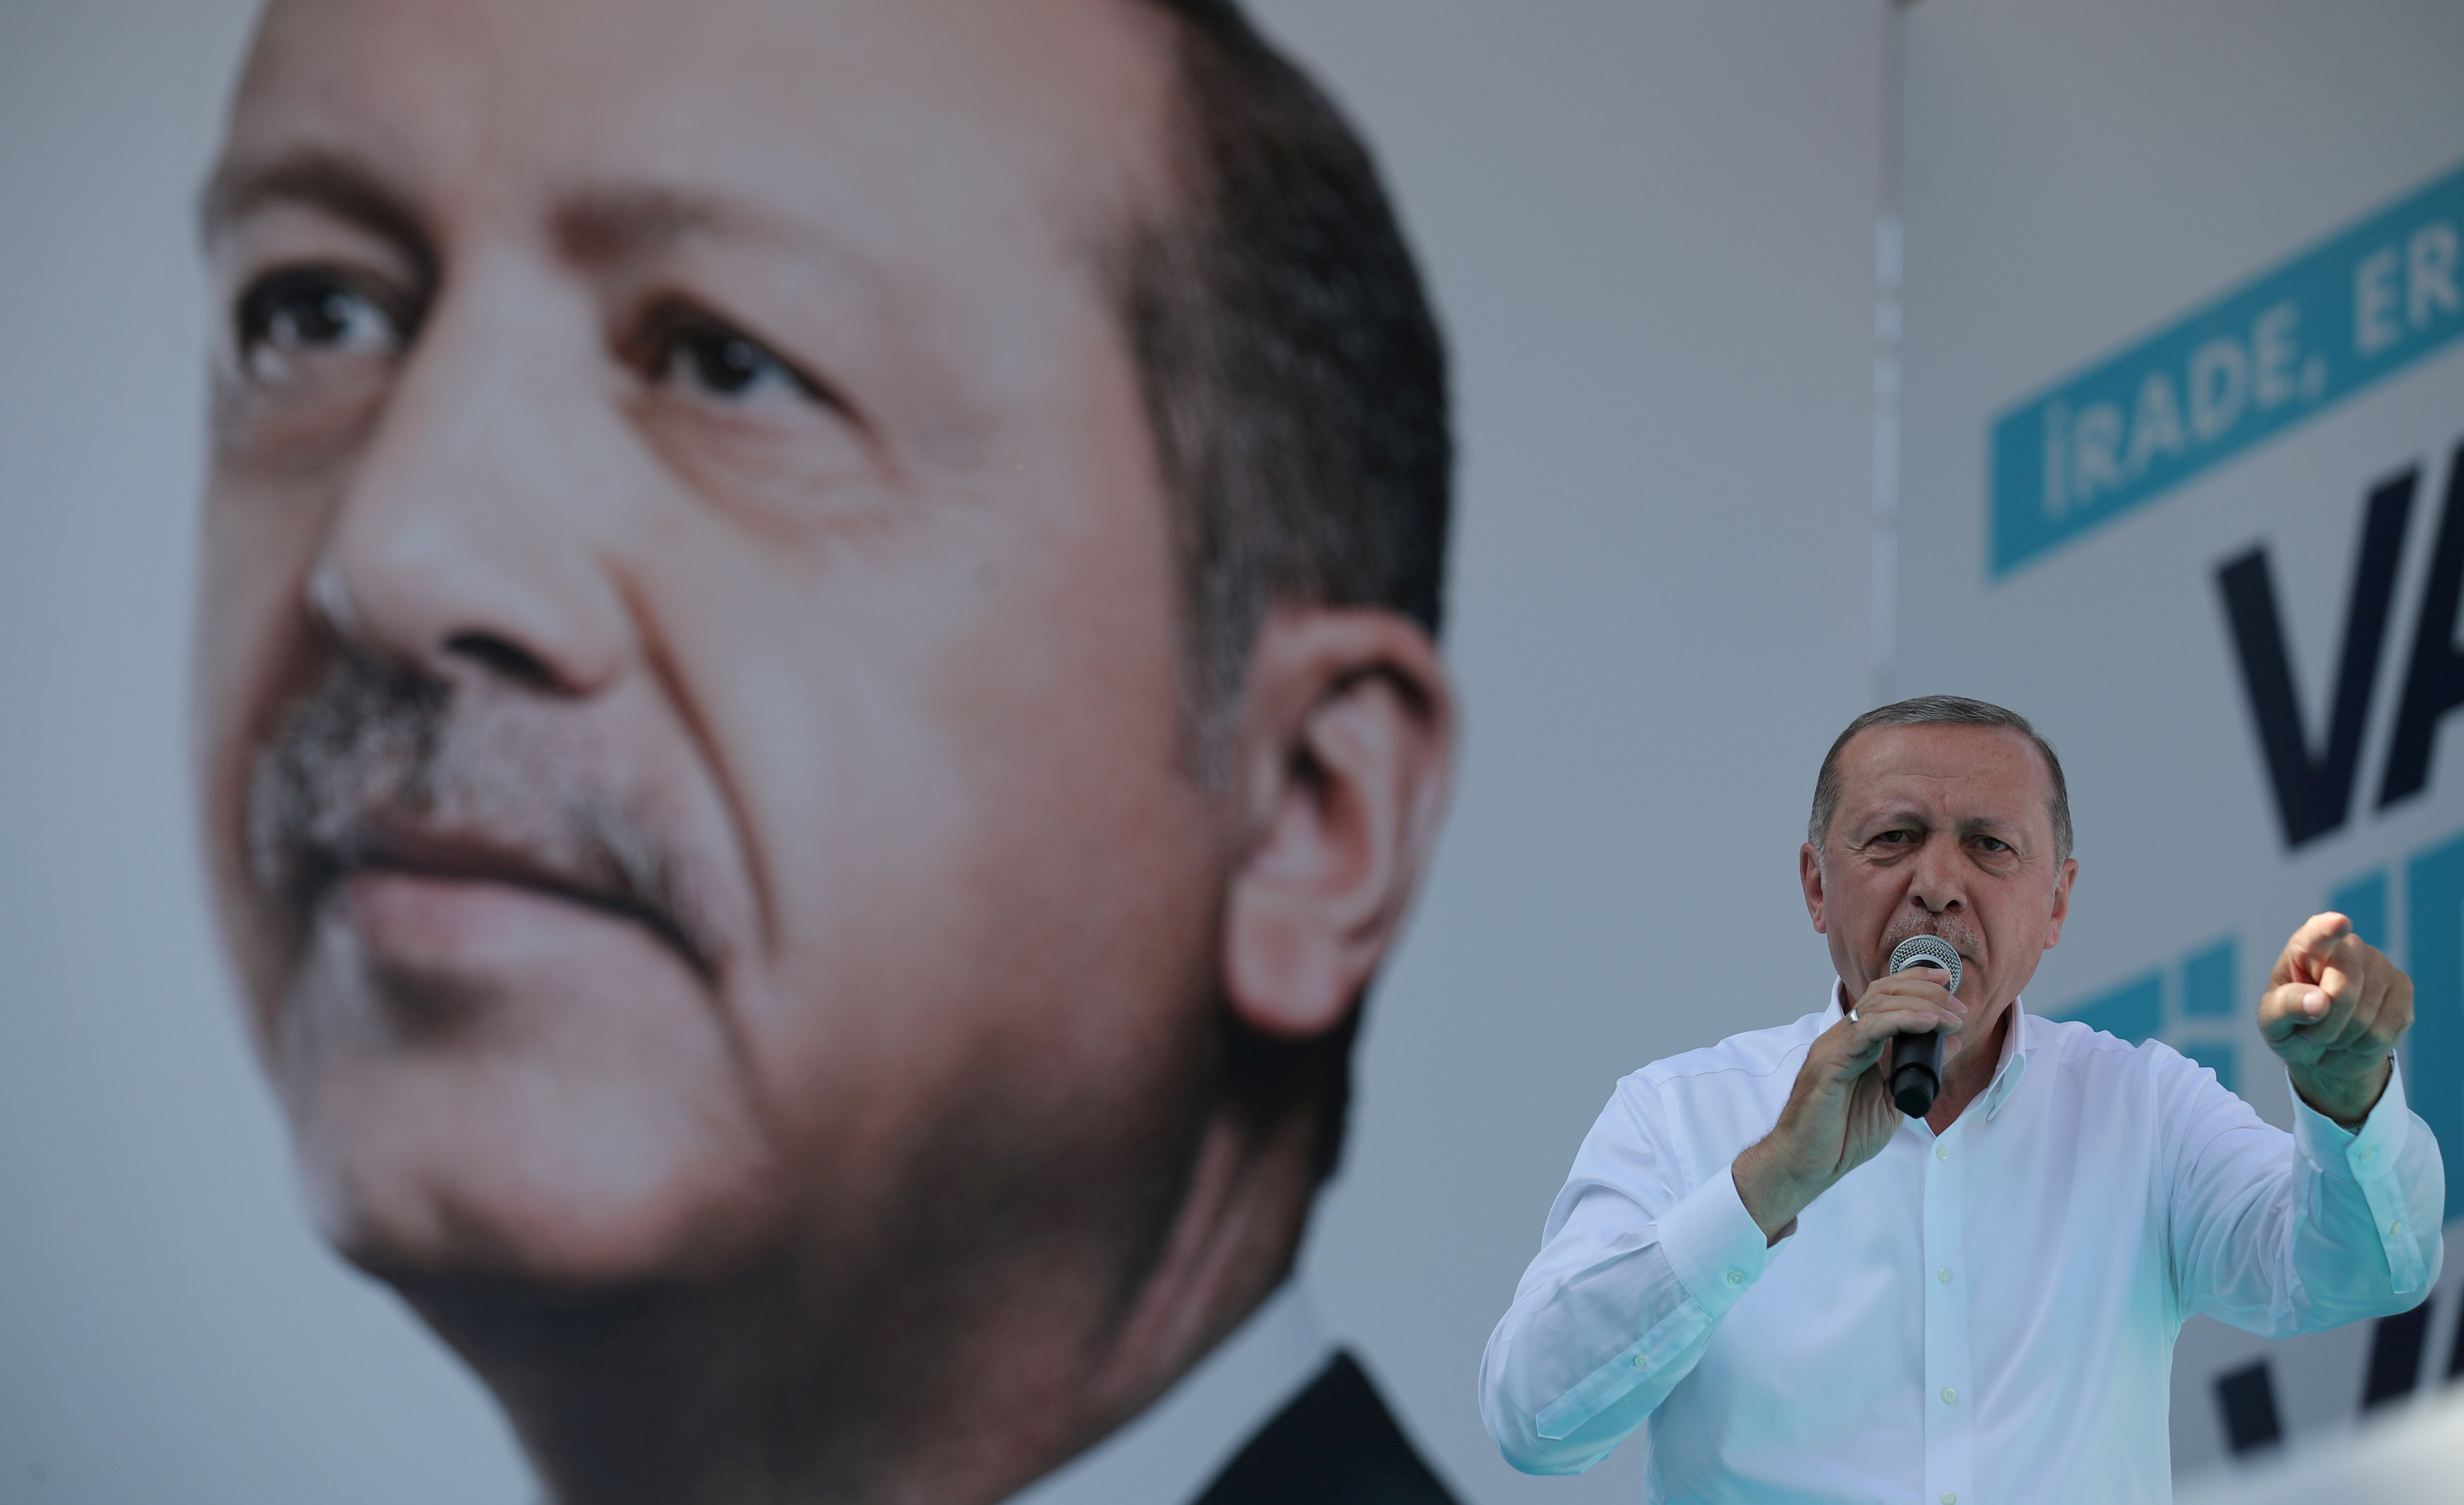 FILE PHOTO: Turkish President Tayyip Erdogan addresses his supporters during an election rally in Ankara, Turkey, June 9, 2018. REUTERS/Umit Bektas/File Photo